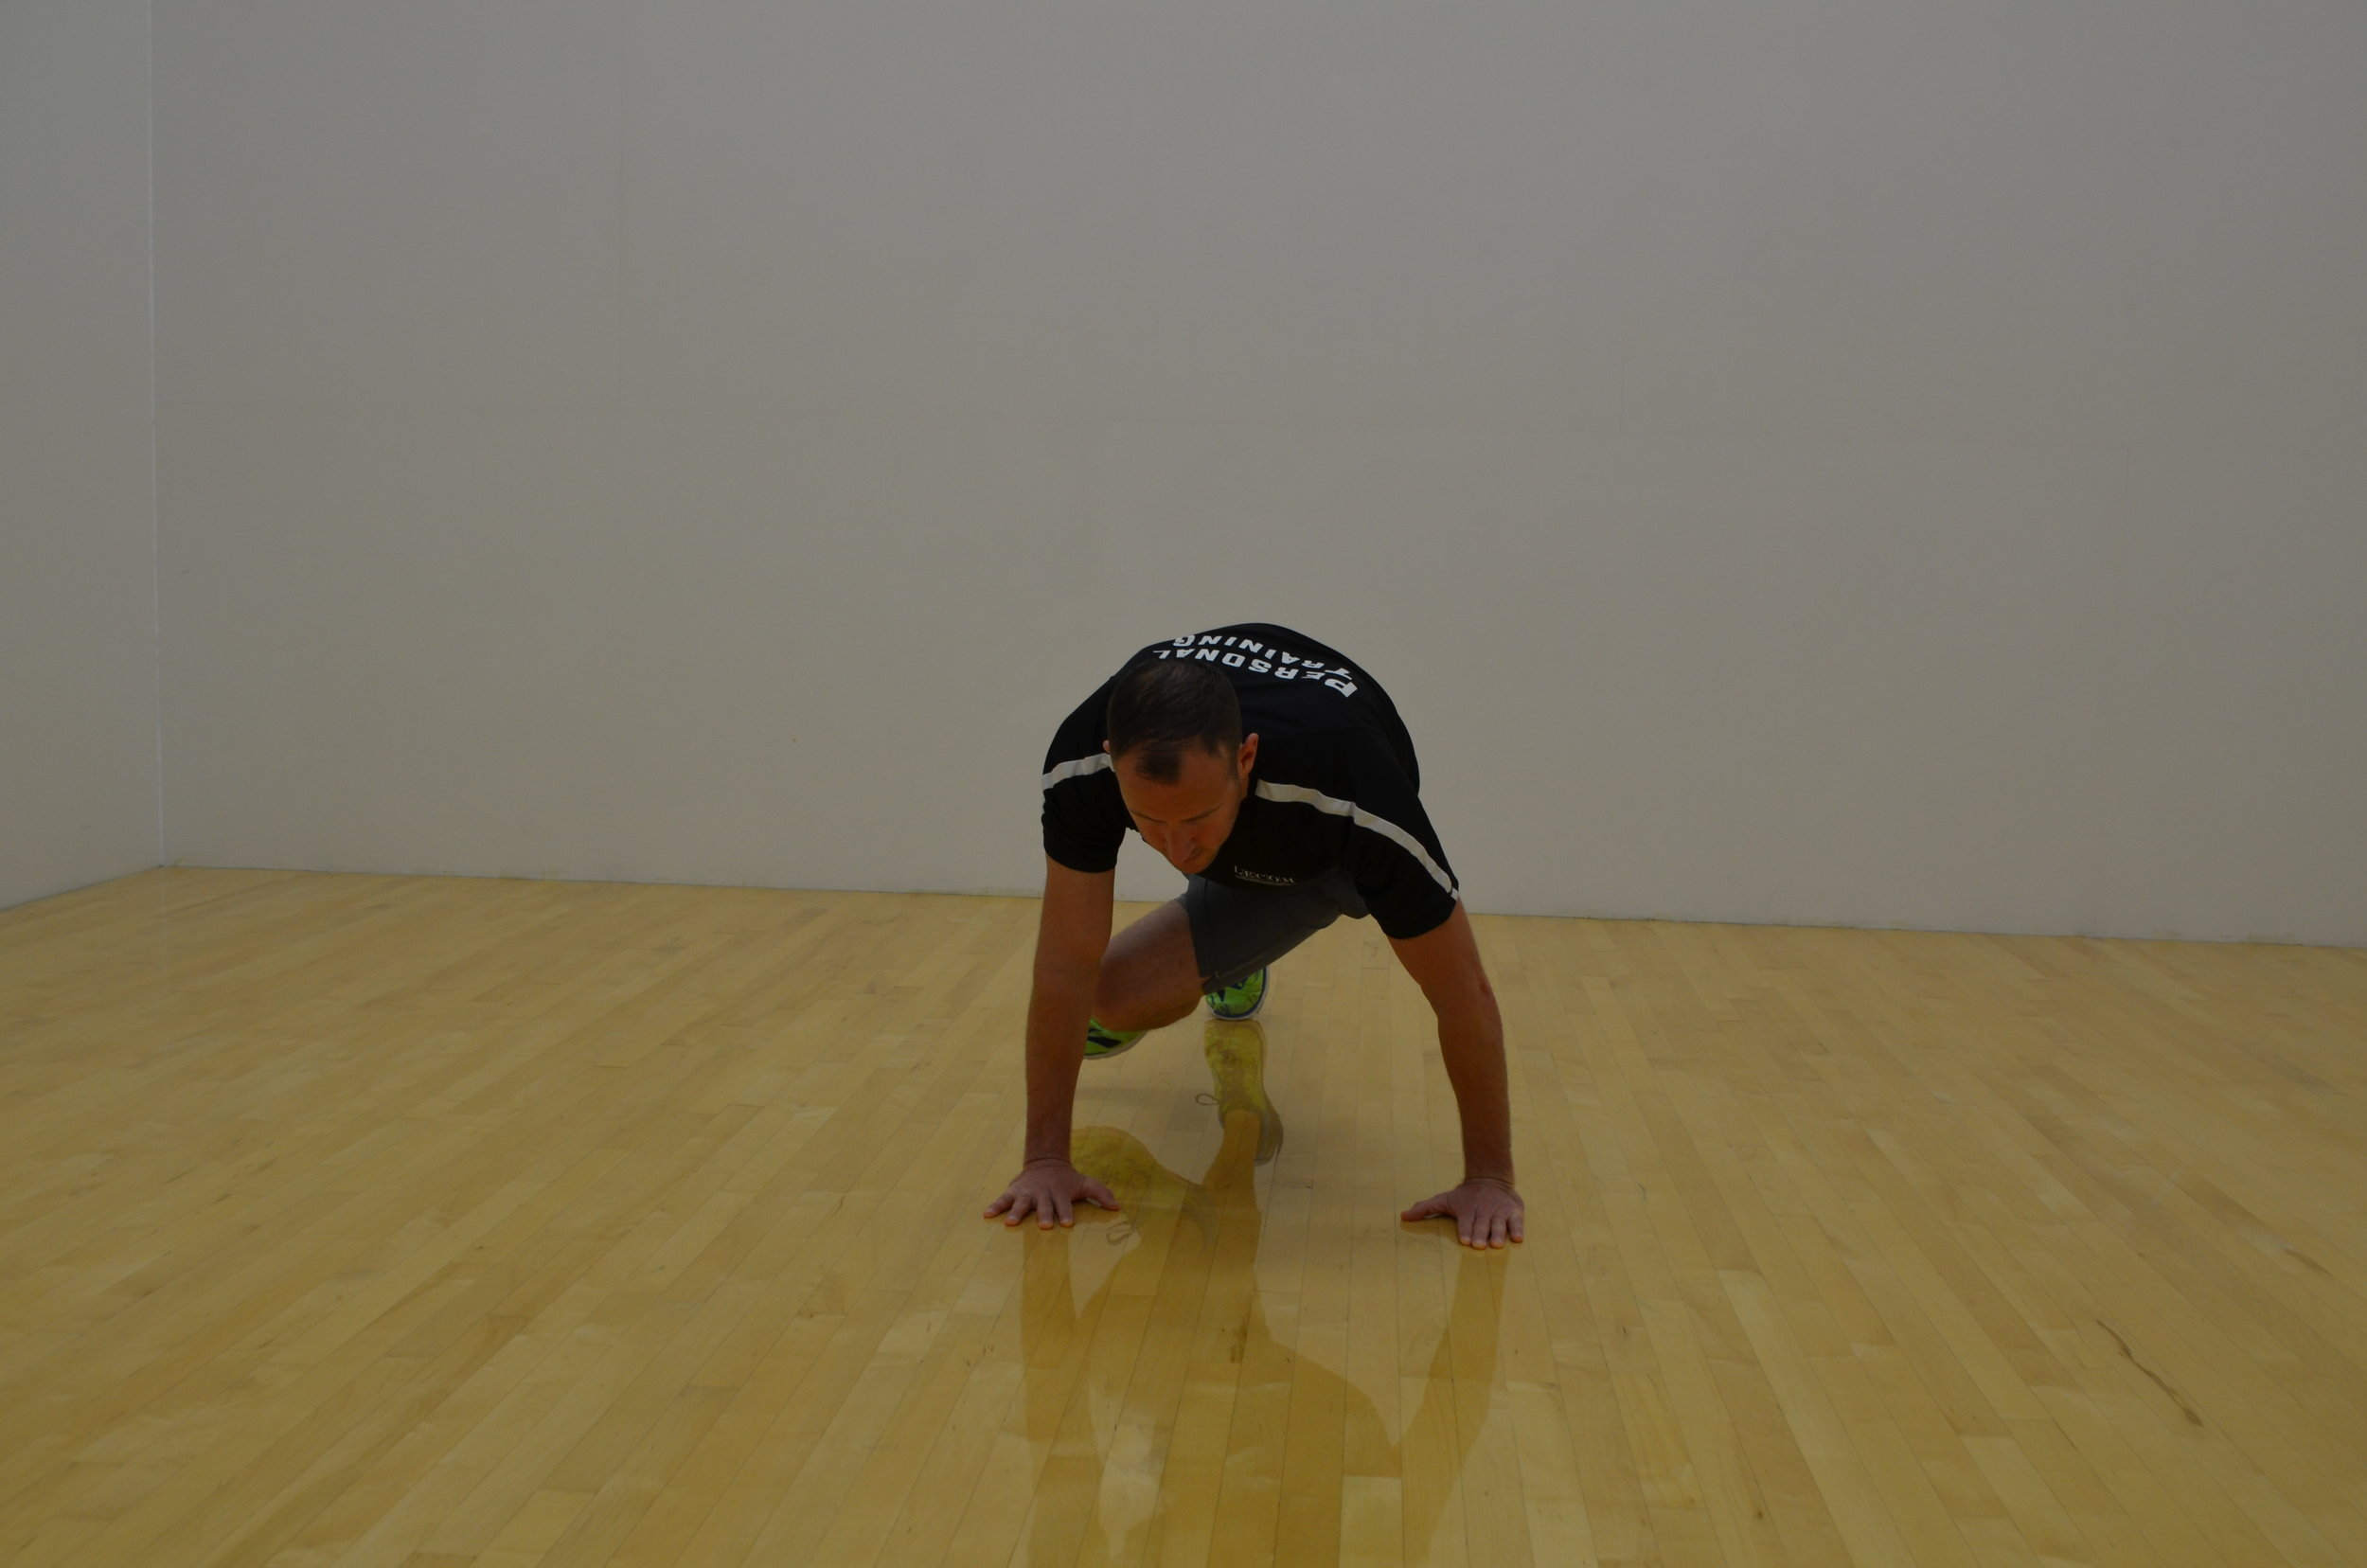 Plank with Hip Rotation